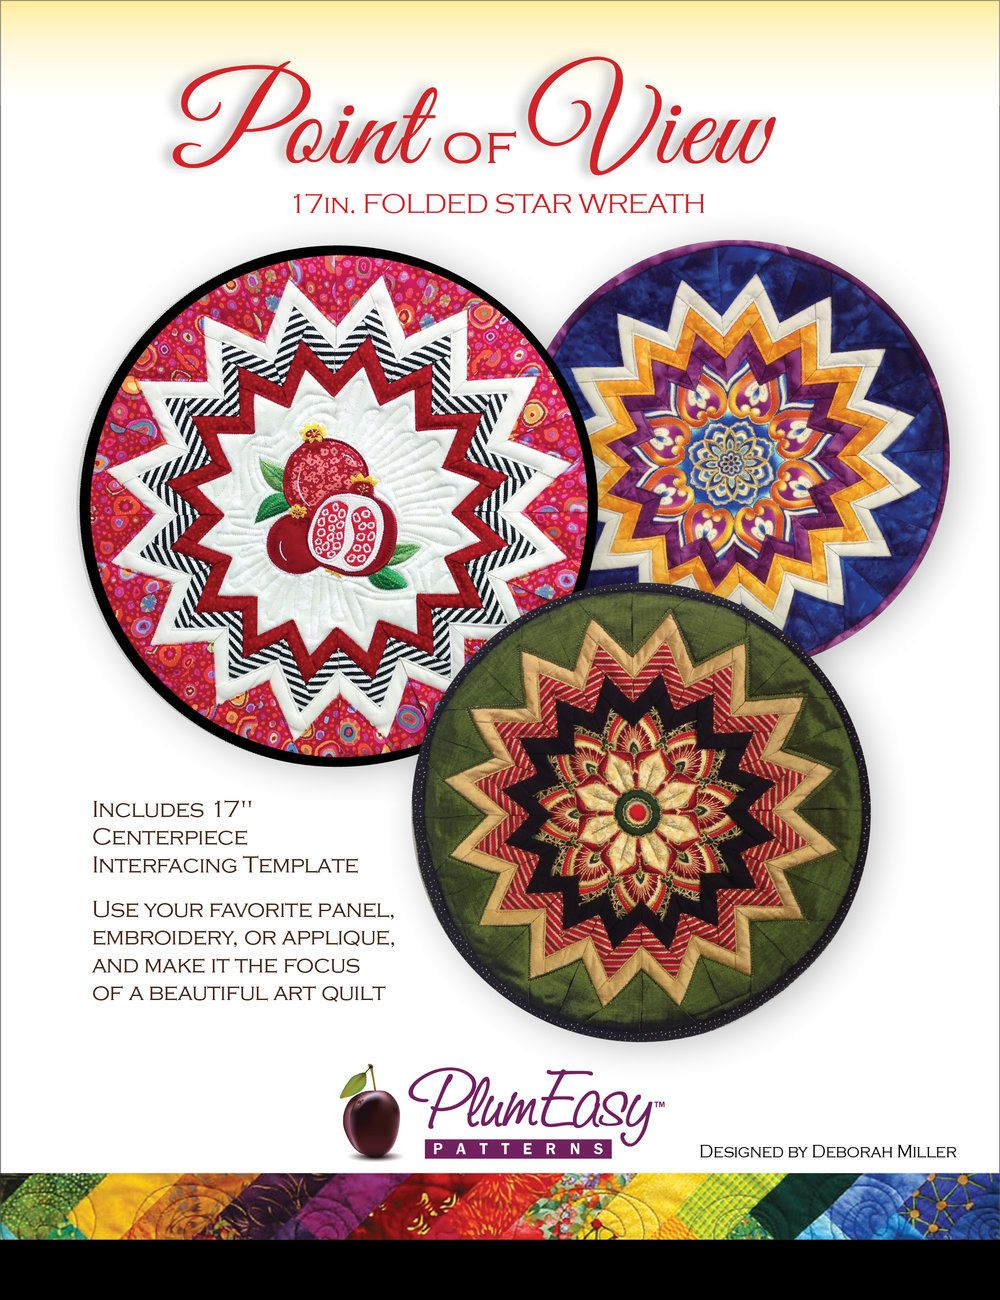 This is a pattern for Point of View Folded Star Wreath pattern. It has one  template included to help make this project in an efficient and fun way.   More interfacing templates are available in 3-packs.  This pattern makes amazing wall hangings or table toppers with little work,  giving life t